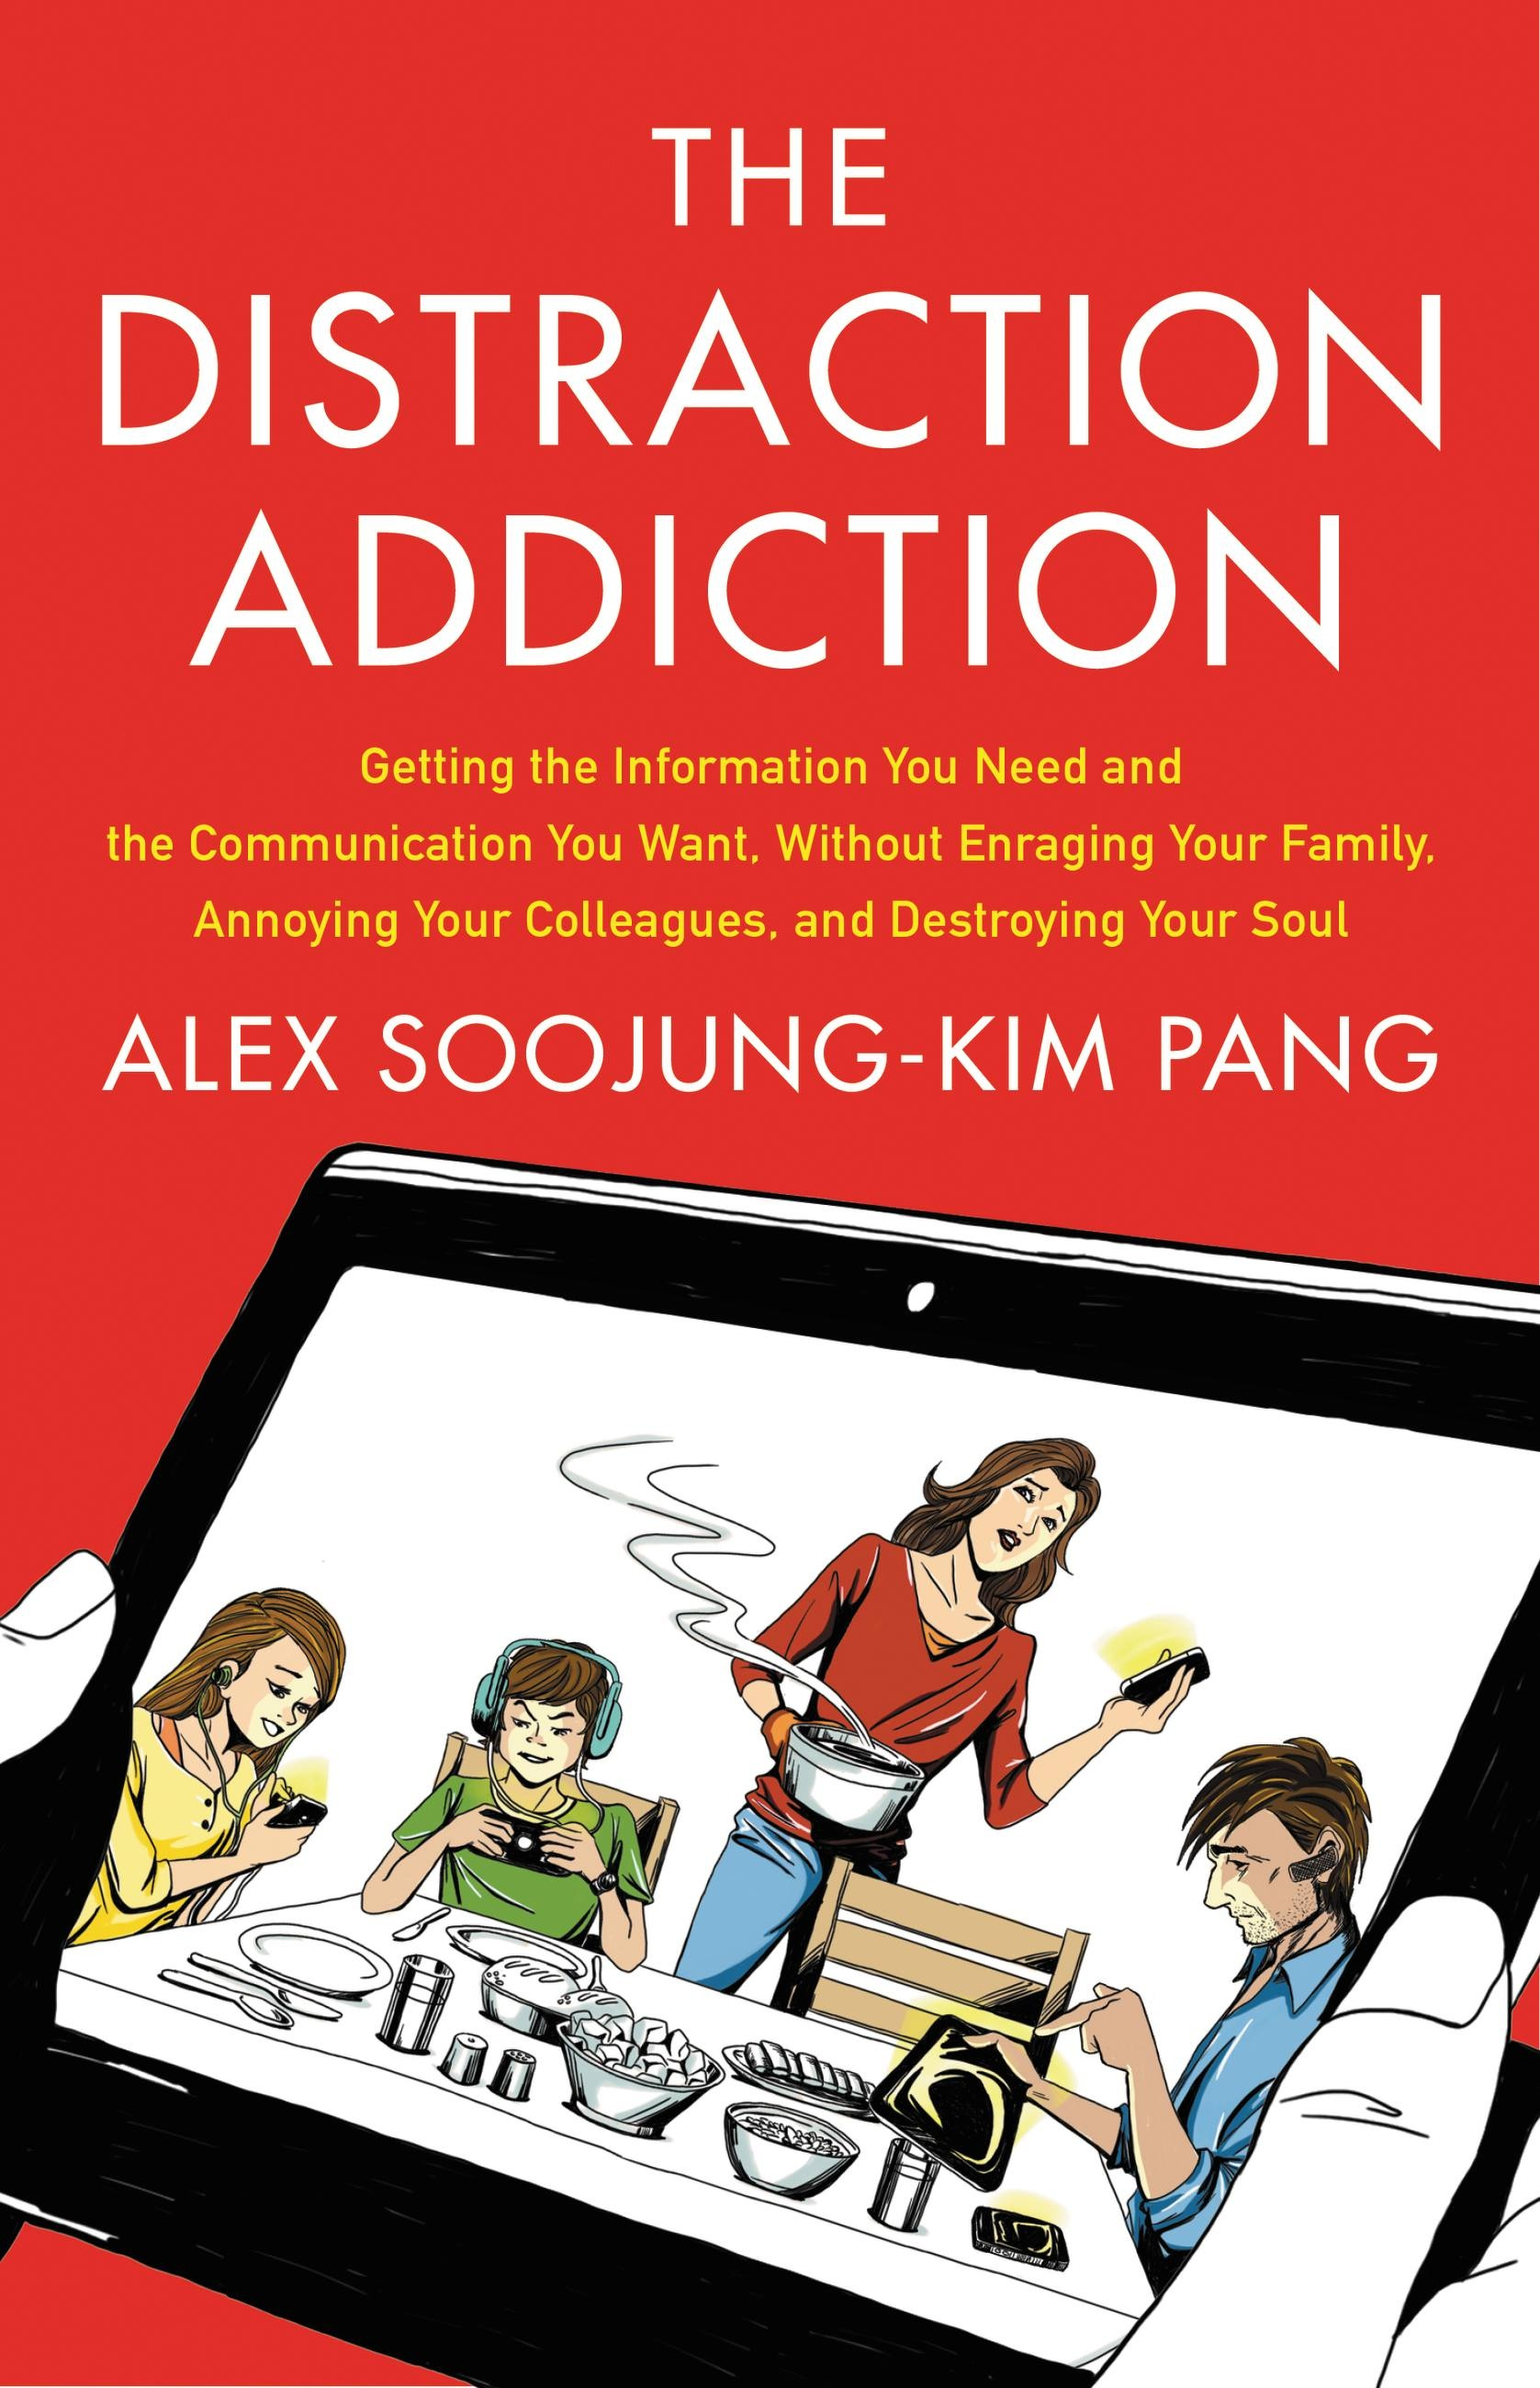 The Distraction Addiction